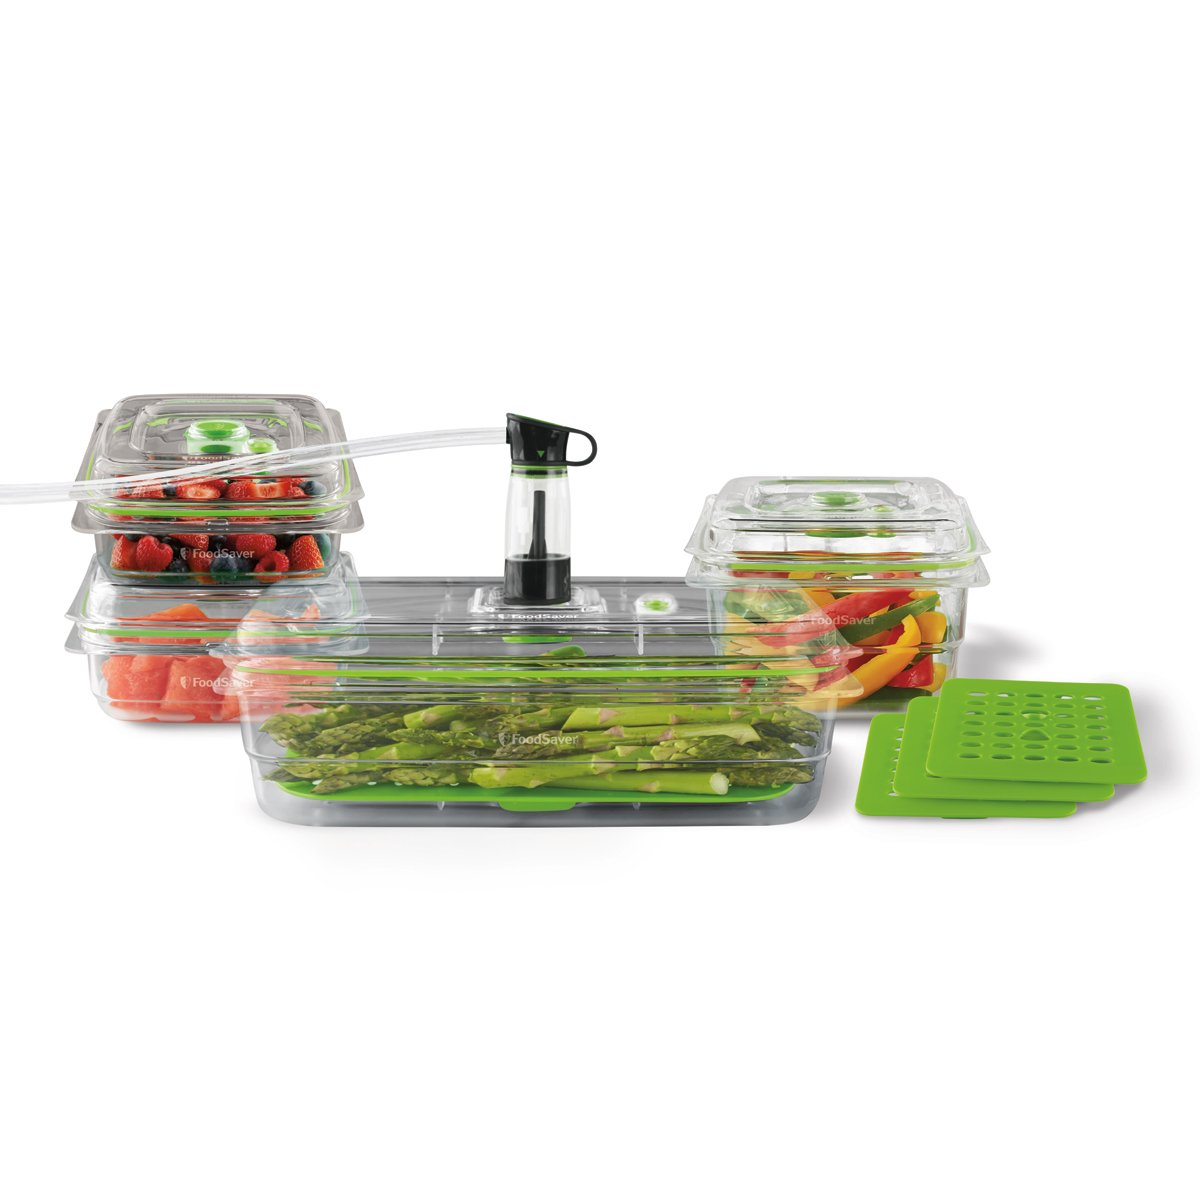 FoodSaver Vacuum Sealed Fresh Containers,4-Piece Bundle Plus 4 Trays, Clear, Crack/Shatter/Odor/Stain Resistant, BPA Free FA4SC33510T4-033